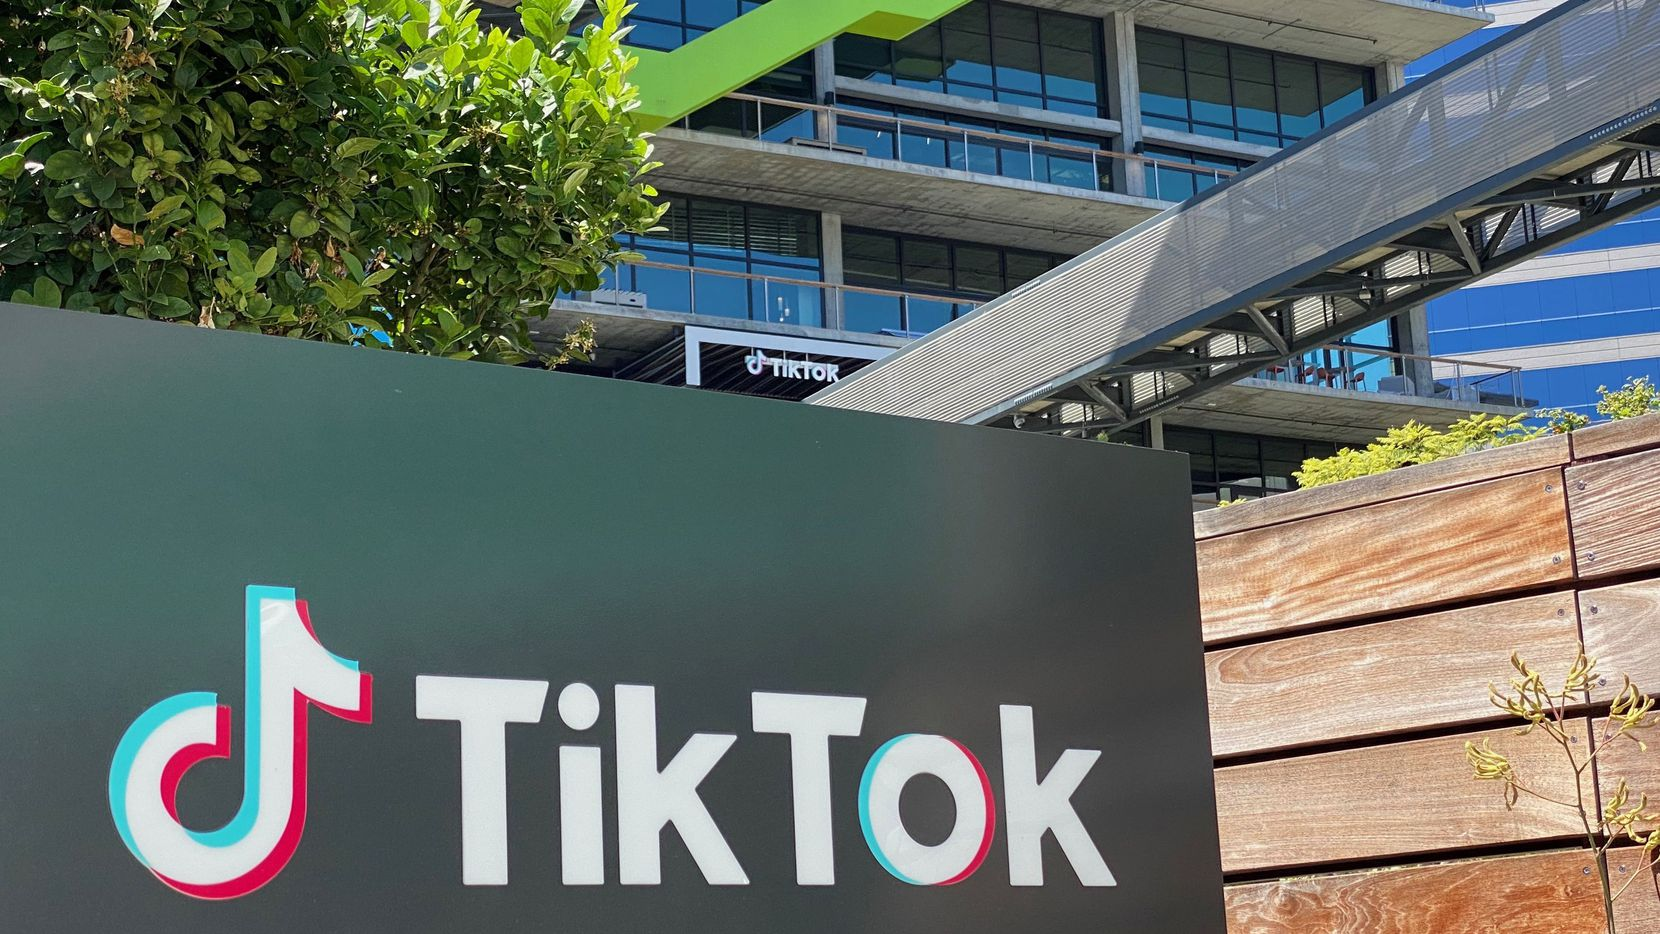 This photo taken on Aug. 11 shows the logo of Chinese video app TikTok ion the side of the company's new office space at the C3 campus in Culver City, Calif.